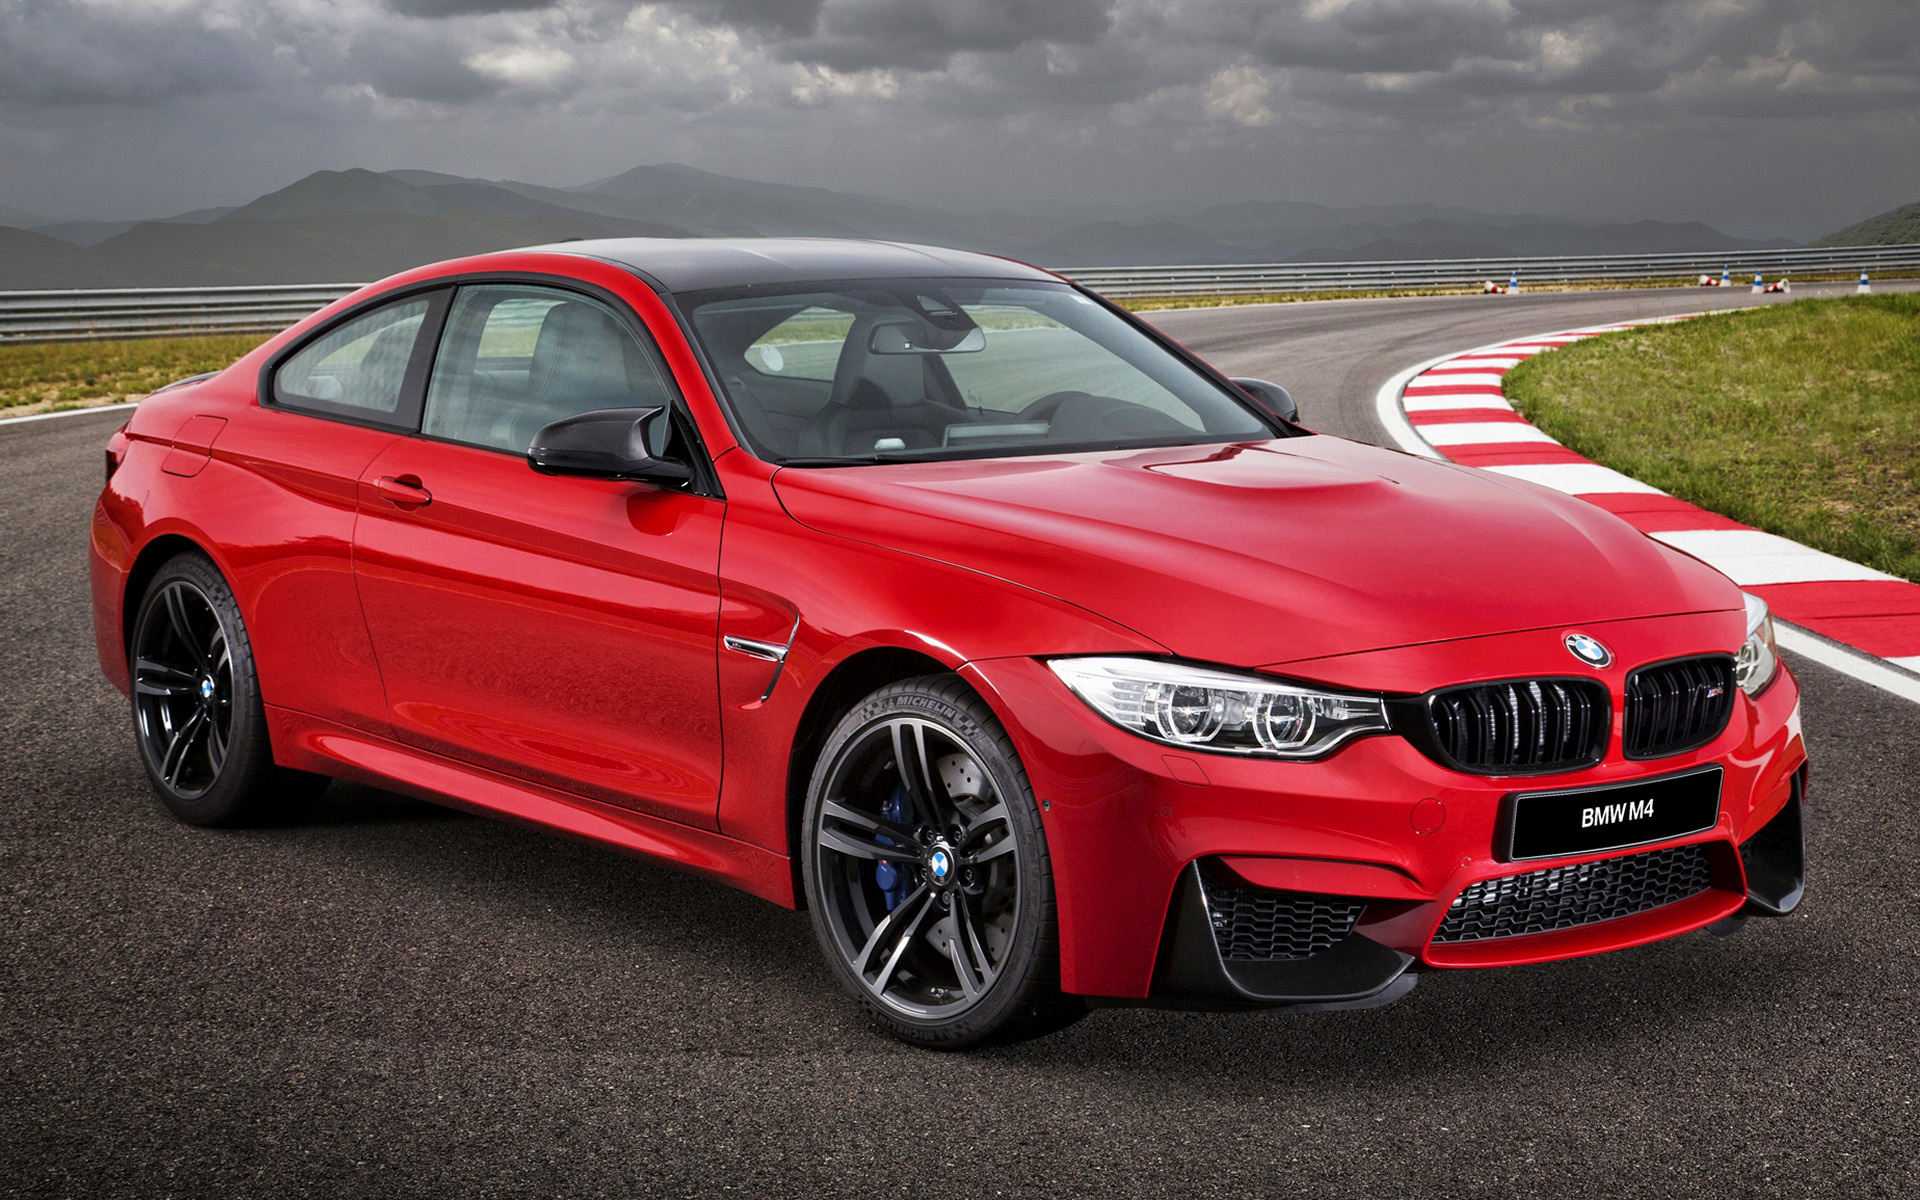 BMW M4 Coupe Paint Work Edition (2016) Wallpapers and HD ...